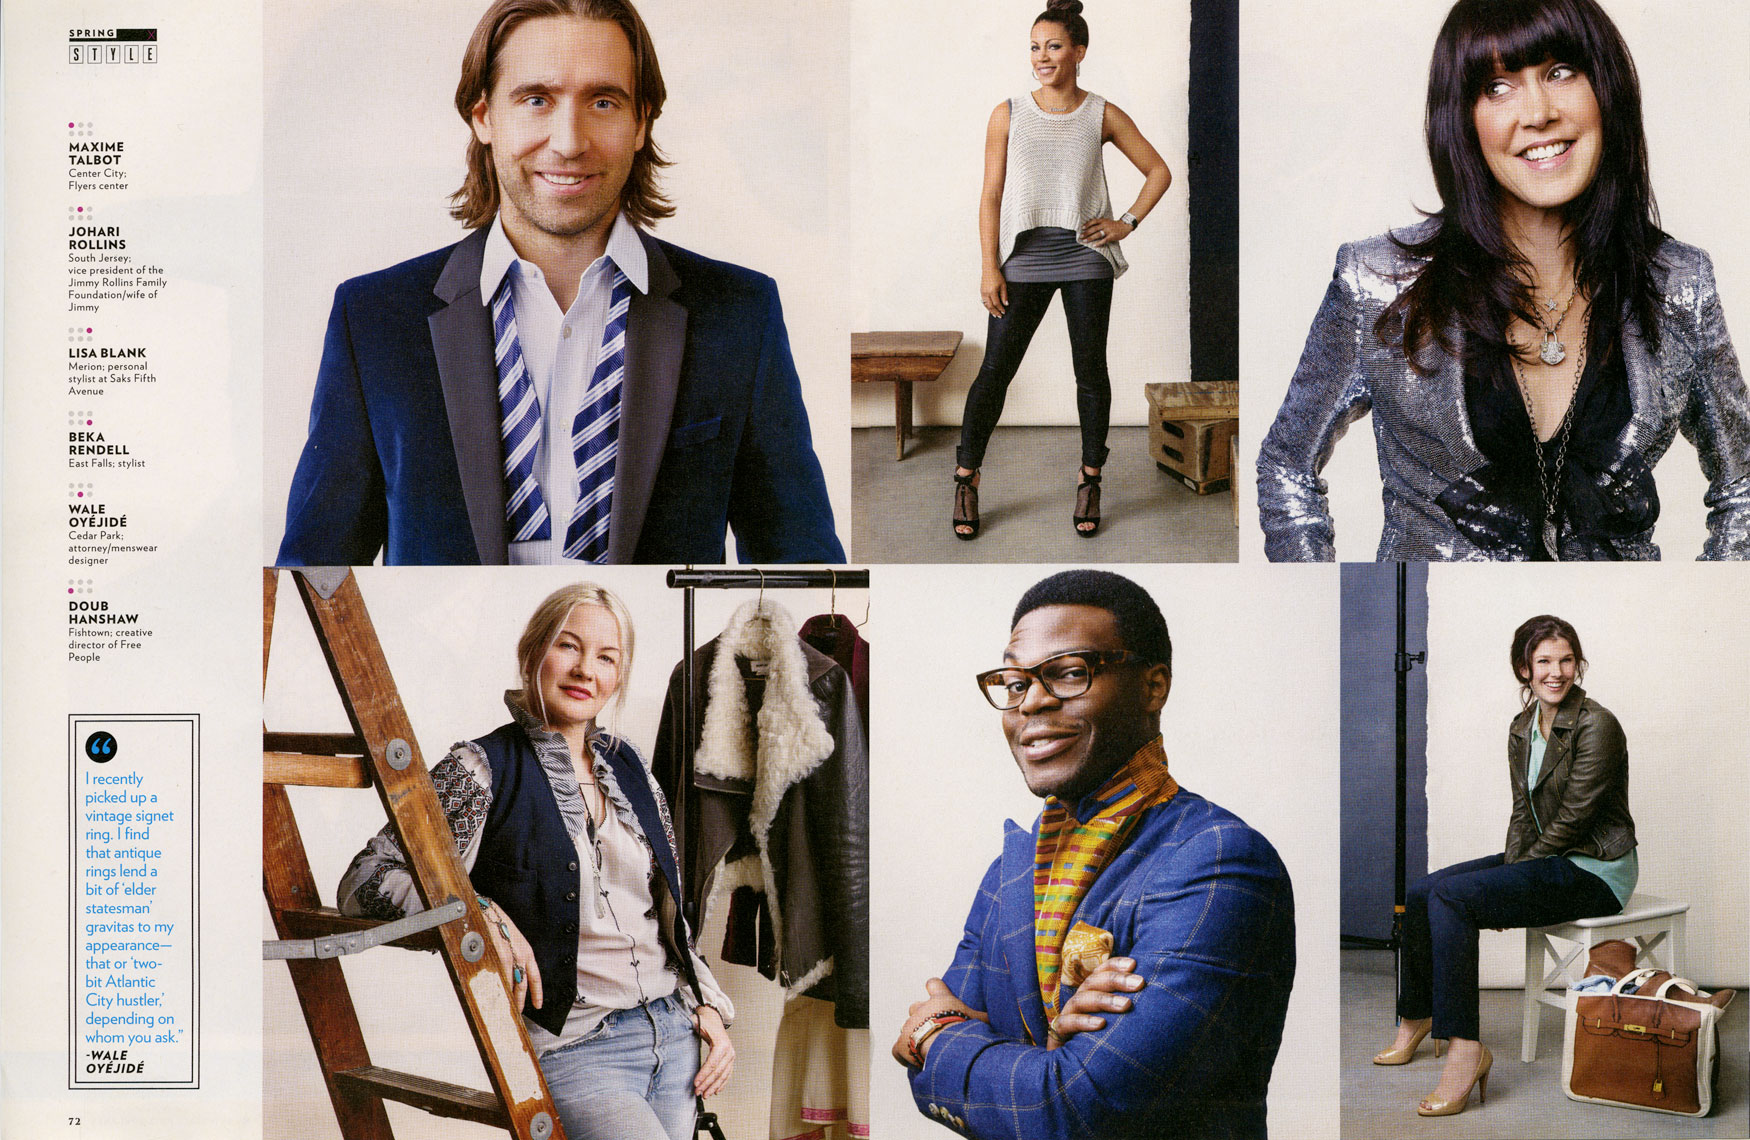 Philadelphia Magazine: FASHION: The Best Dressed List: Maxime Talbot, Johari Rollins, Lisa Blank, Doub Hanshaw, Wale Oyéjidé, Beka Rendell.  March 2013 issue